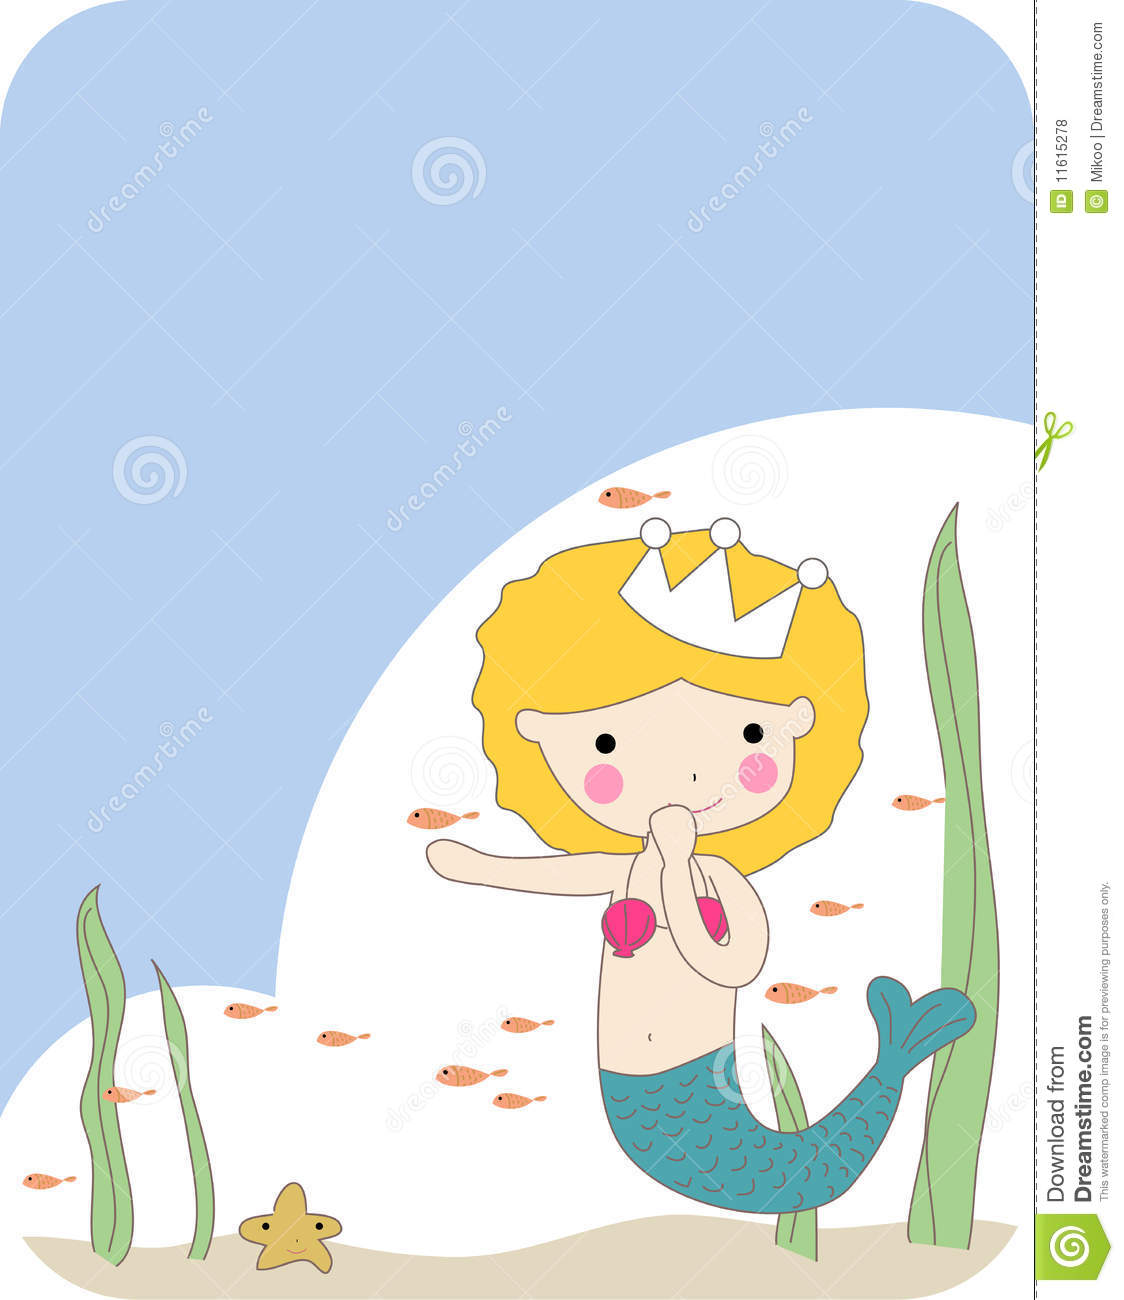 Little Mermaid And Fish Royalty Free Stock Photos Image